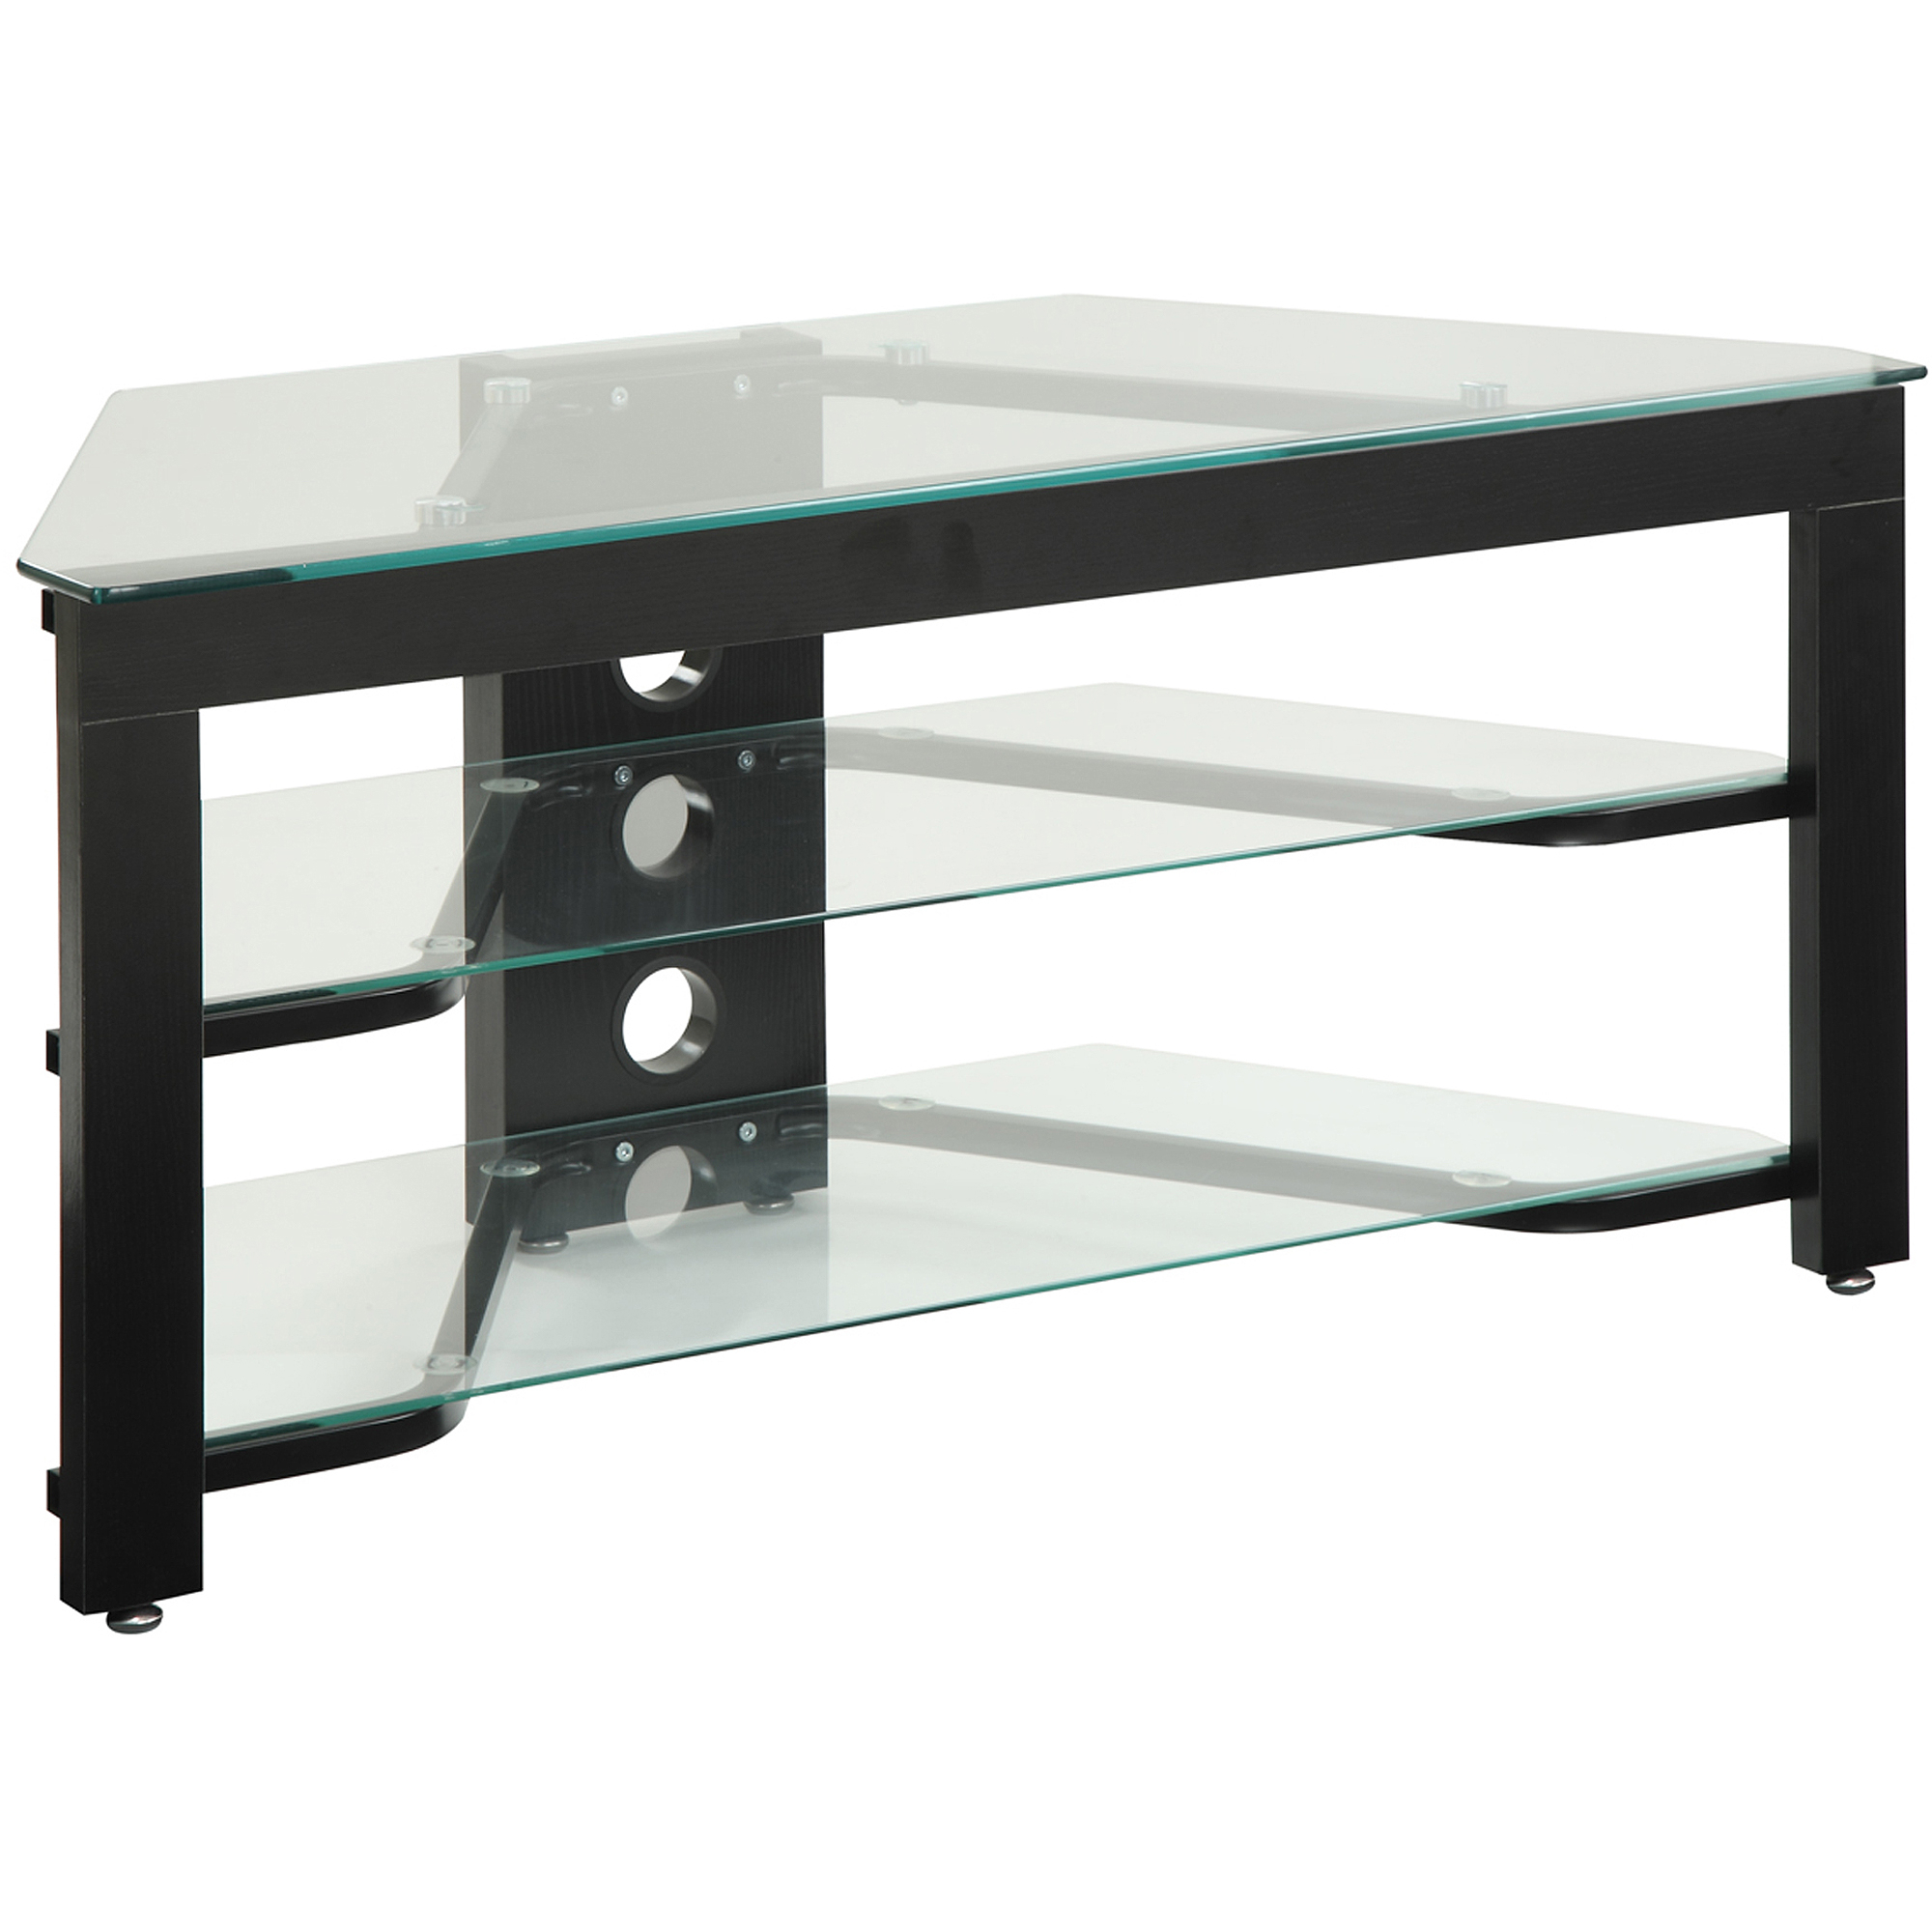 Silver Tv Stand K&b Chrome Modern Gold And Glass Corner With Media Throughout Fashionable Silver Corner Tv Stands (View 18 of 20)